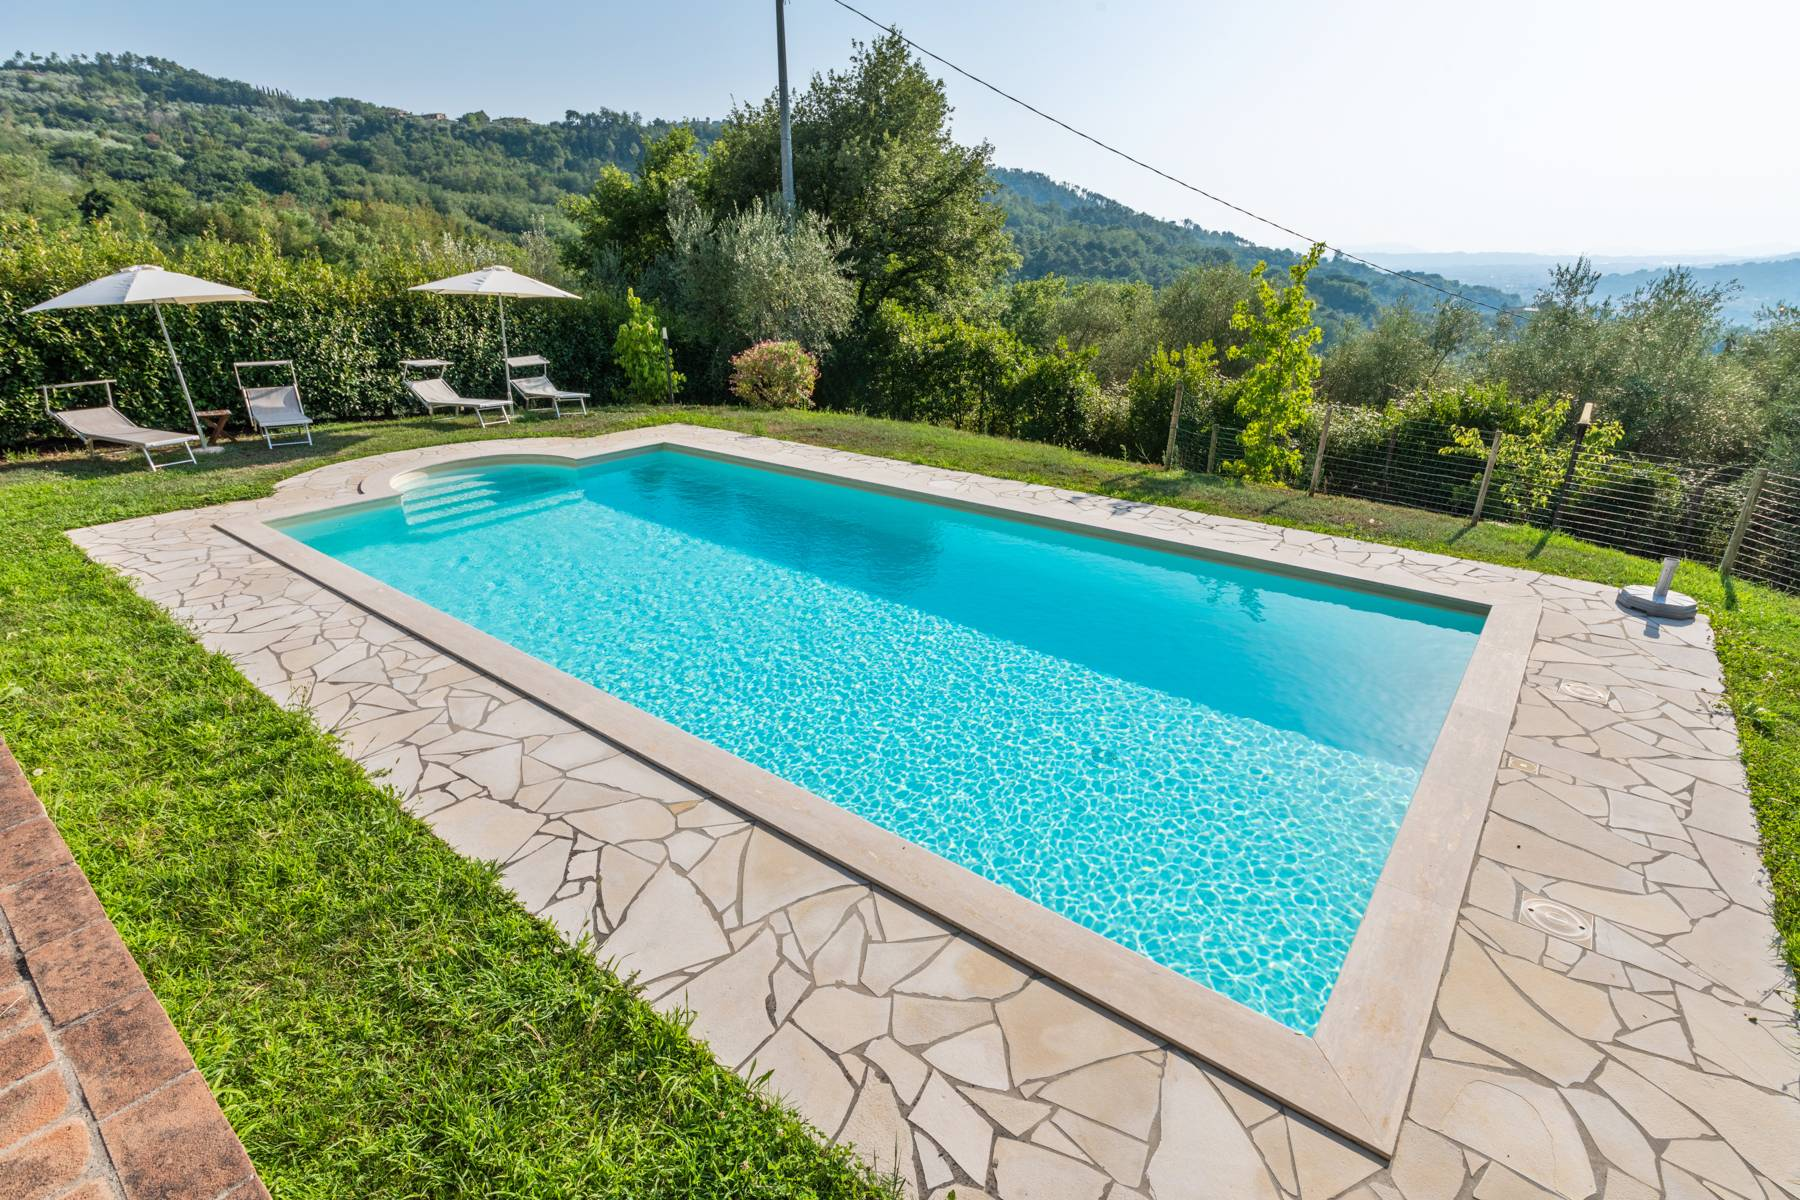 Delightful country house with pool on the tuscan hills - 3